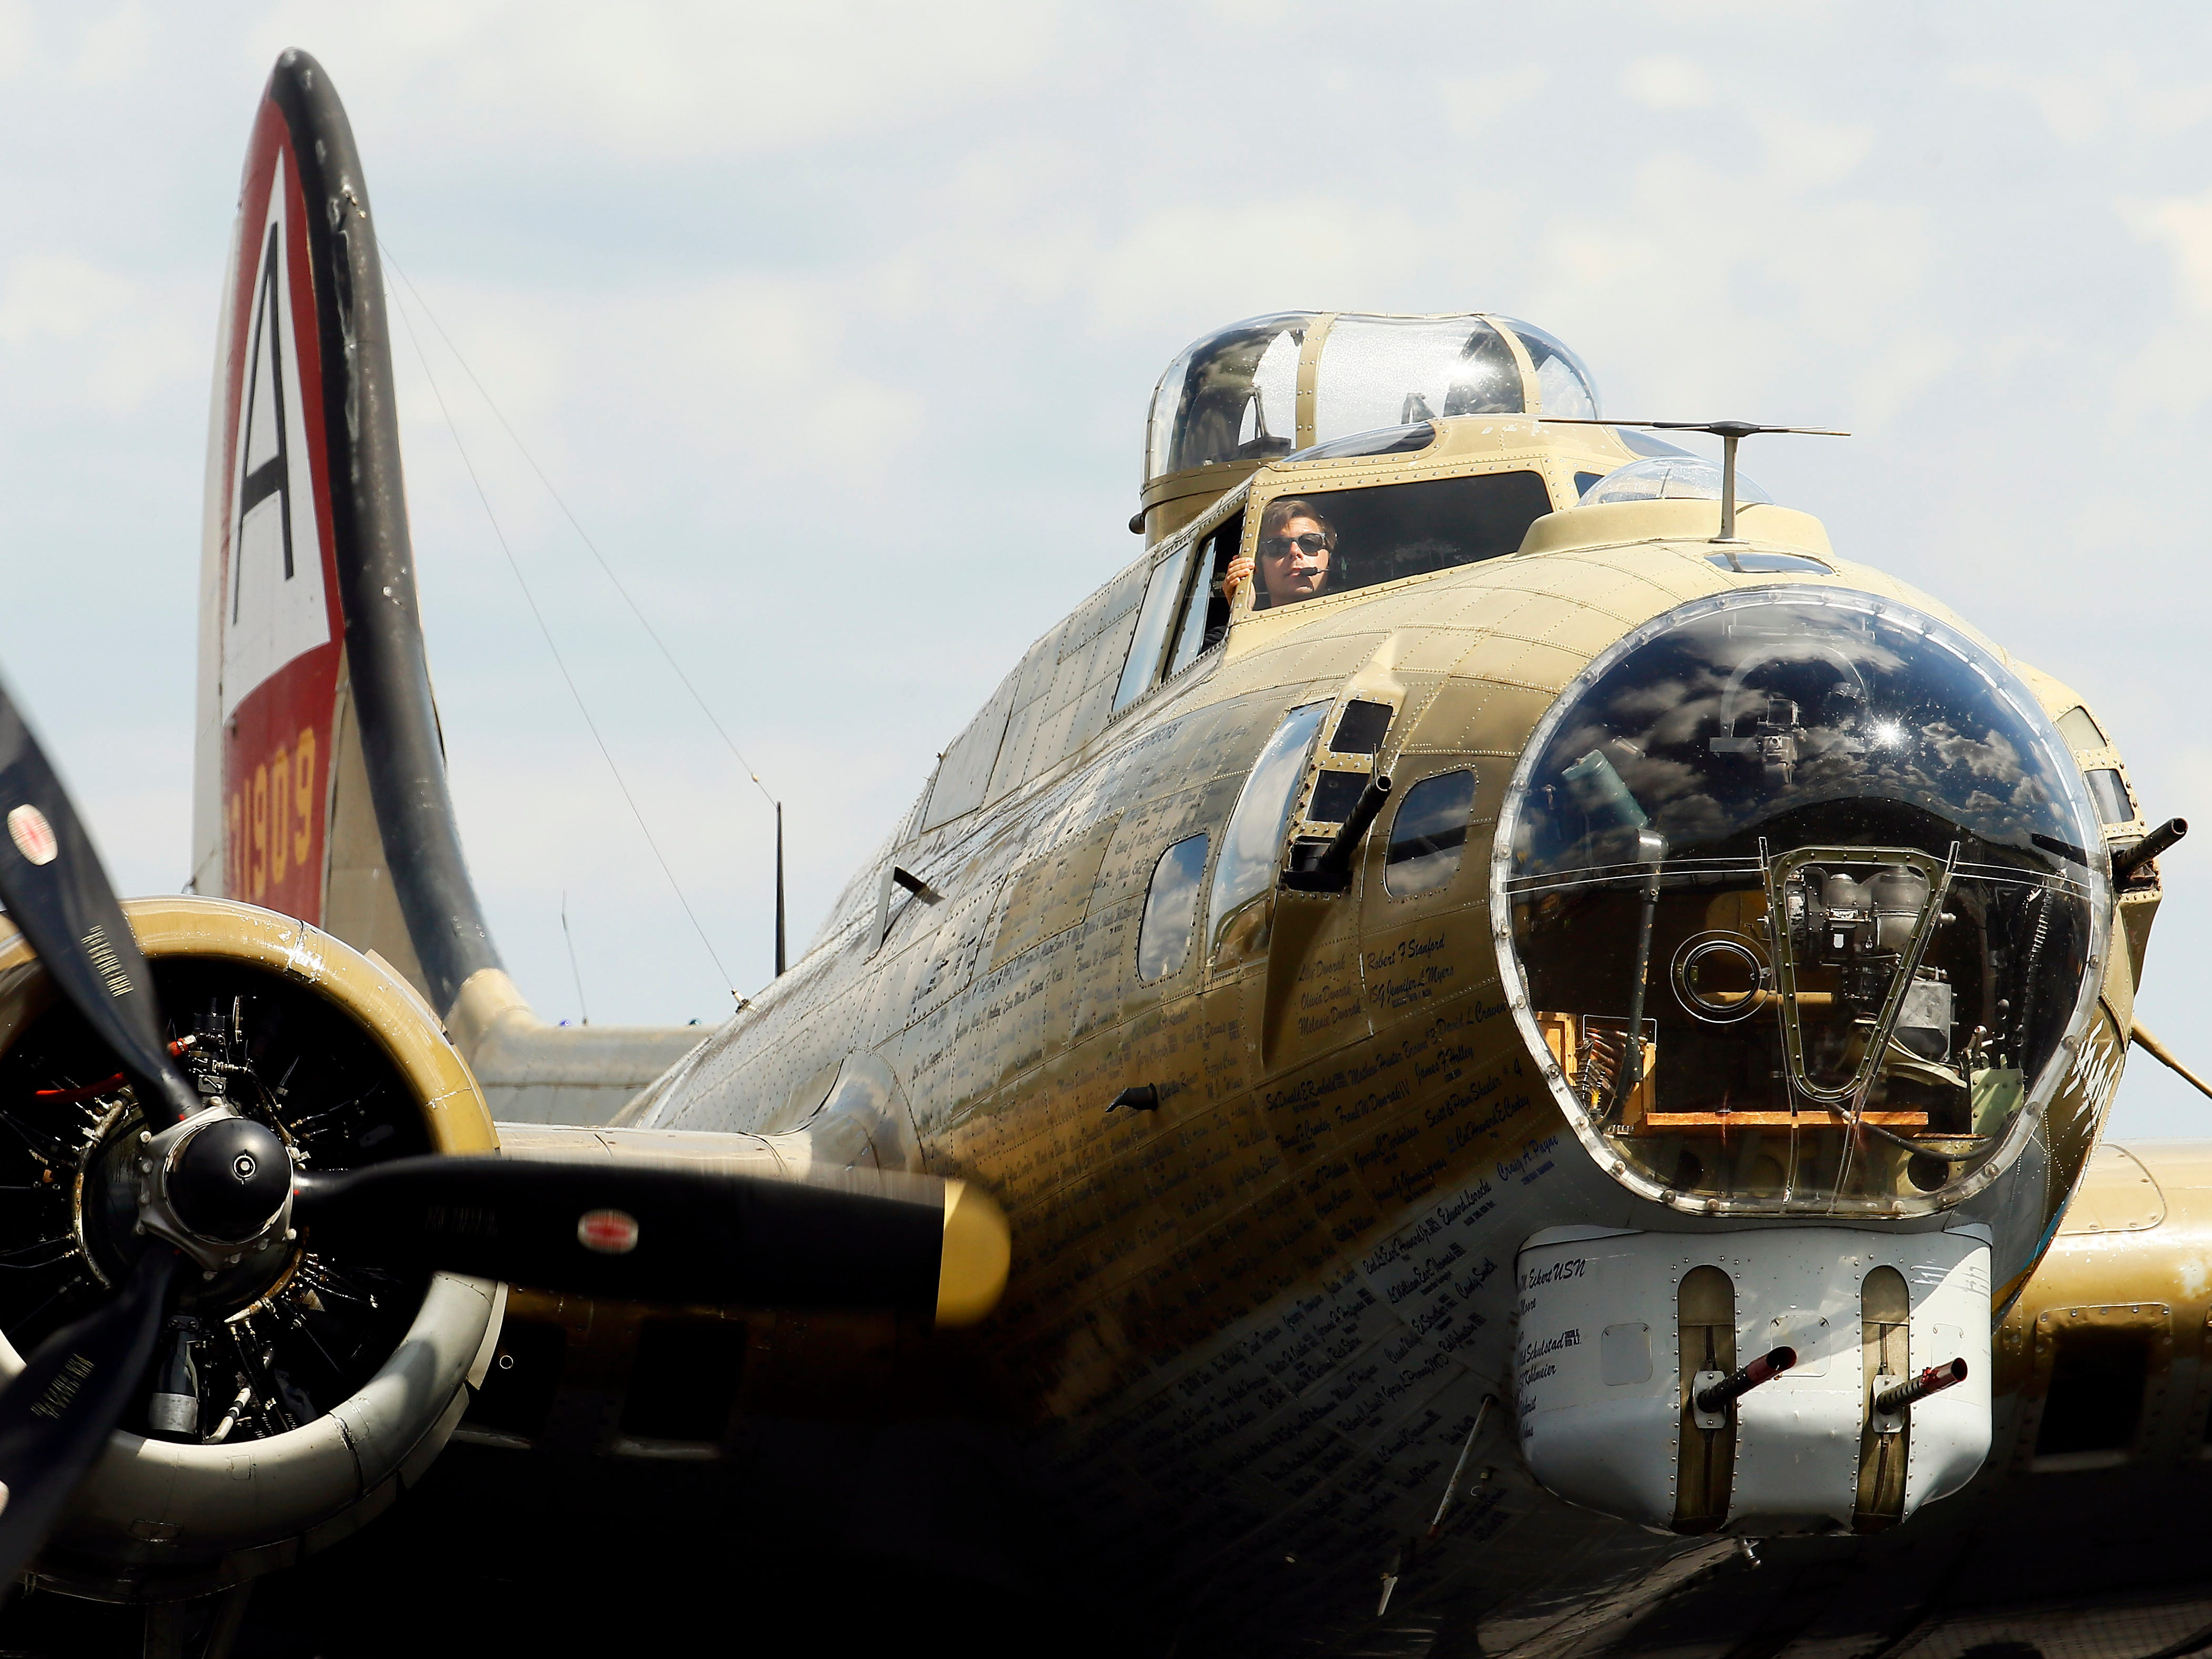 On Tuesday afternoon, WWII fighter planes, B-17 Flying Fortress, a B-24 Liberator, a B-25 Mitchell bomber and a P-51 Mustang fighter  flew into Morristown Airport as part of the Collings Foundation's Wings of Freedom Tour . September 4, 2018, Hanover, NJ